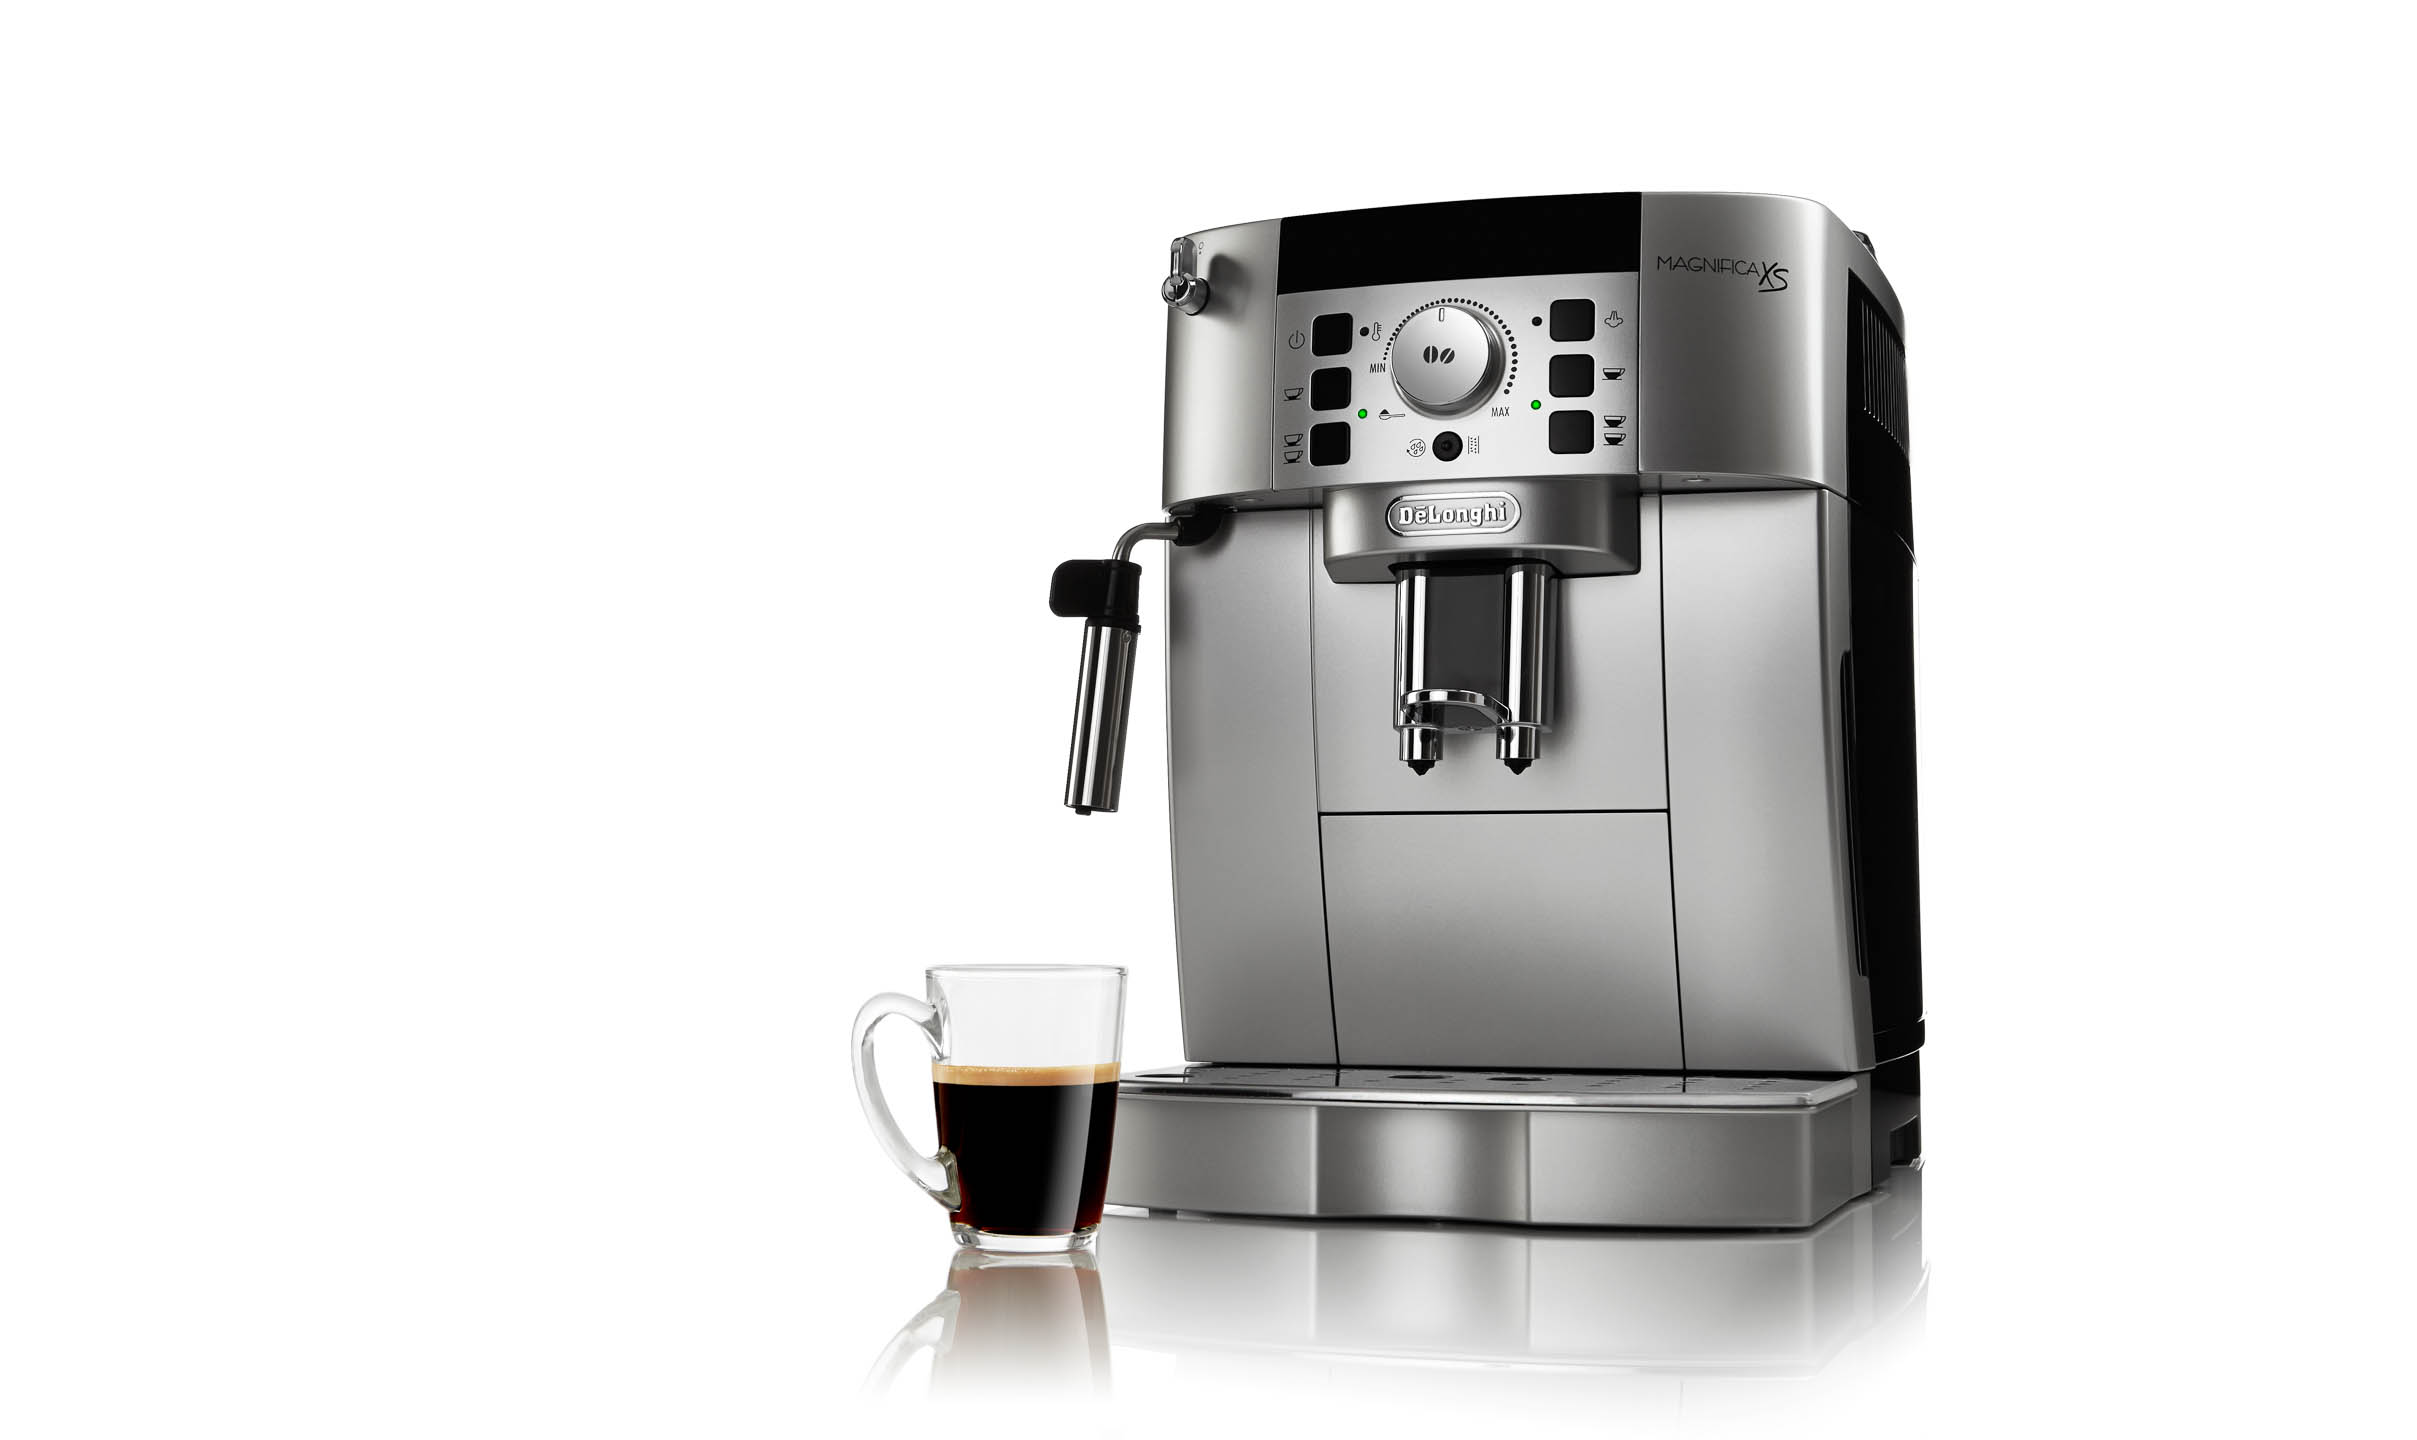 DeLonghi coffee and espresso maker